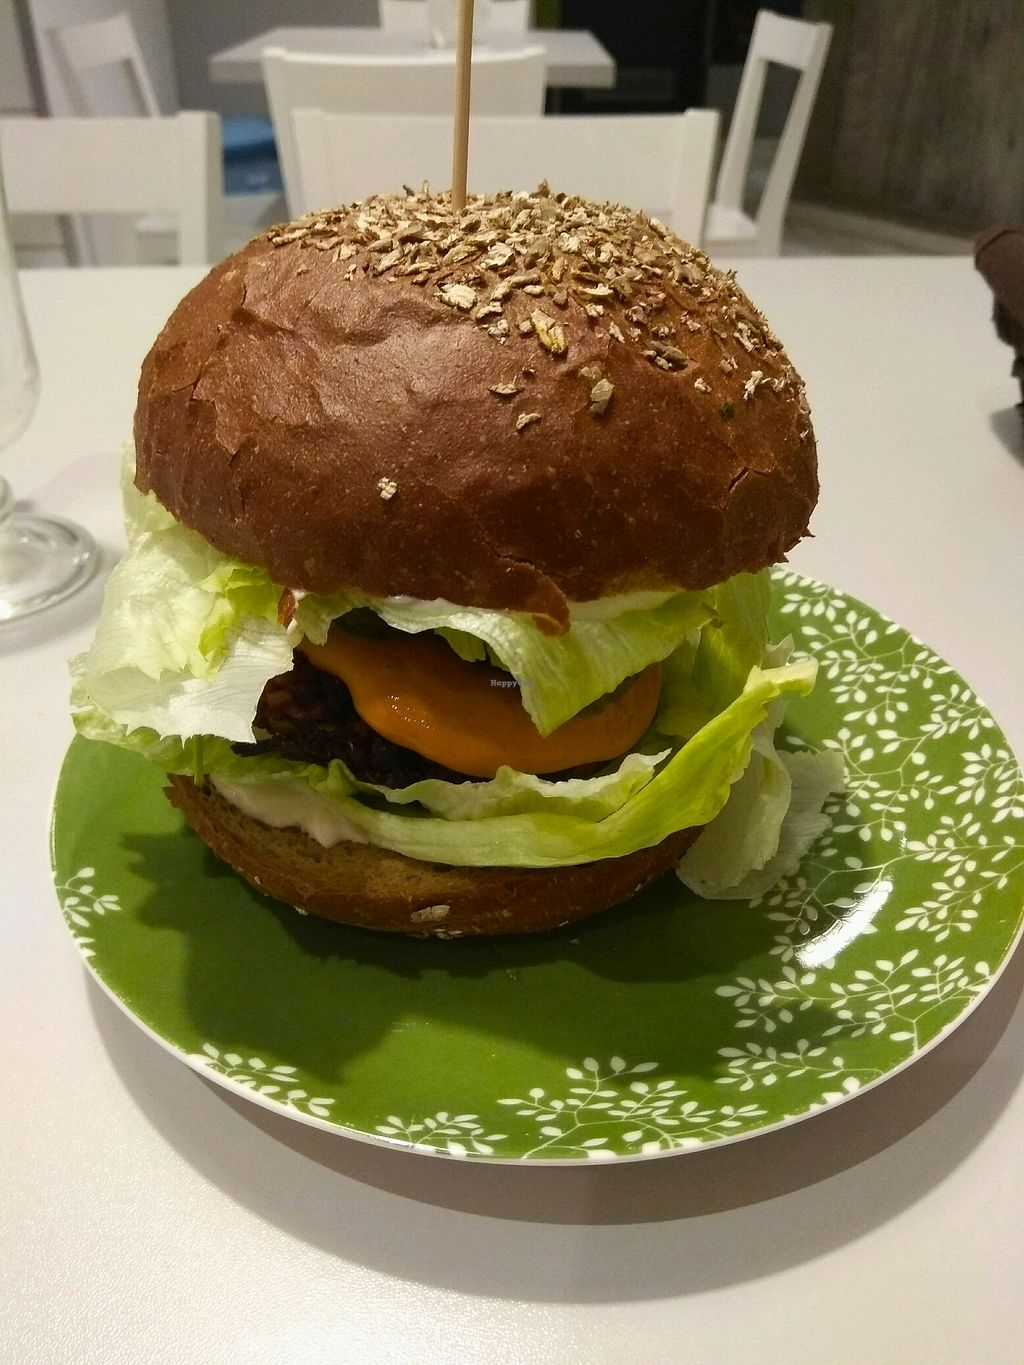 """Photo of Zielona Micha  by <a href=""""/members/profile/Rene.Zinho"""">Rene.Zinho</a> <br/>burger with a patty made of red beet  <br/> November 21, 2017  - <a href='/contact/abuse/image/94991/327854'>Report</a>"""